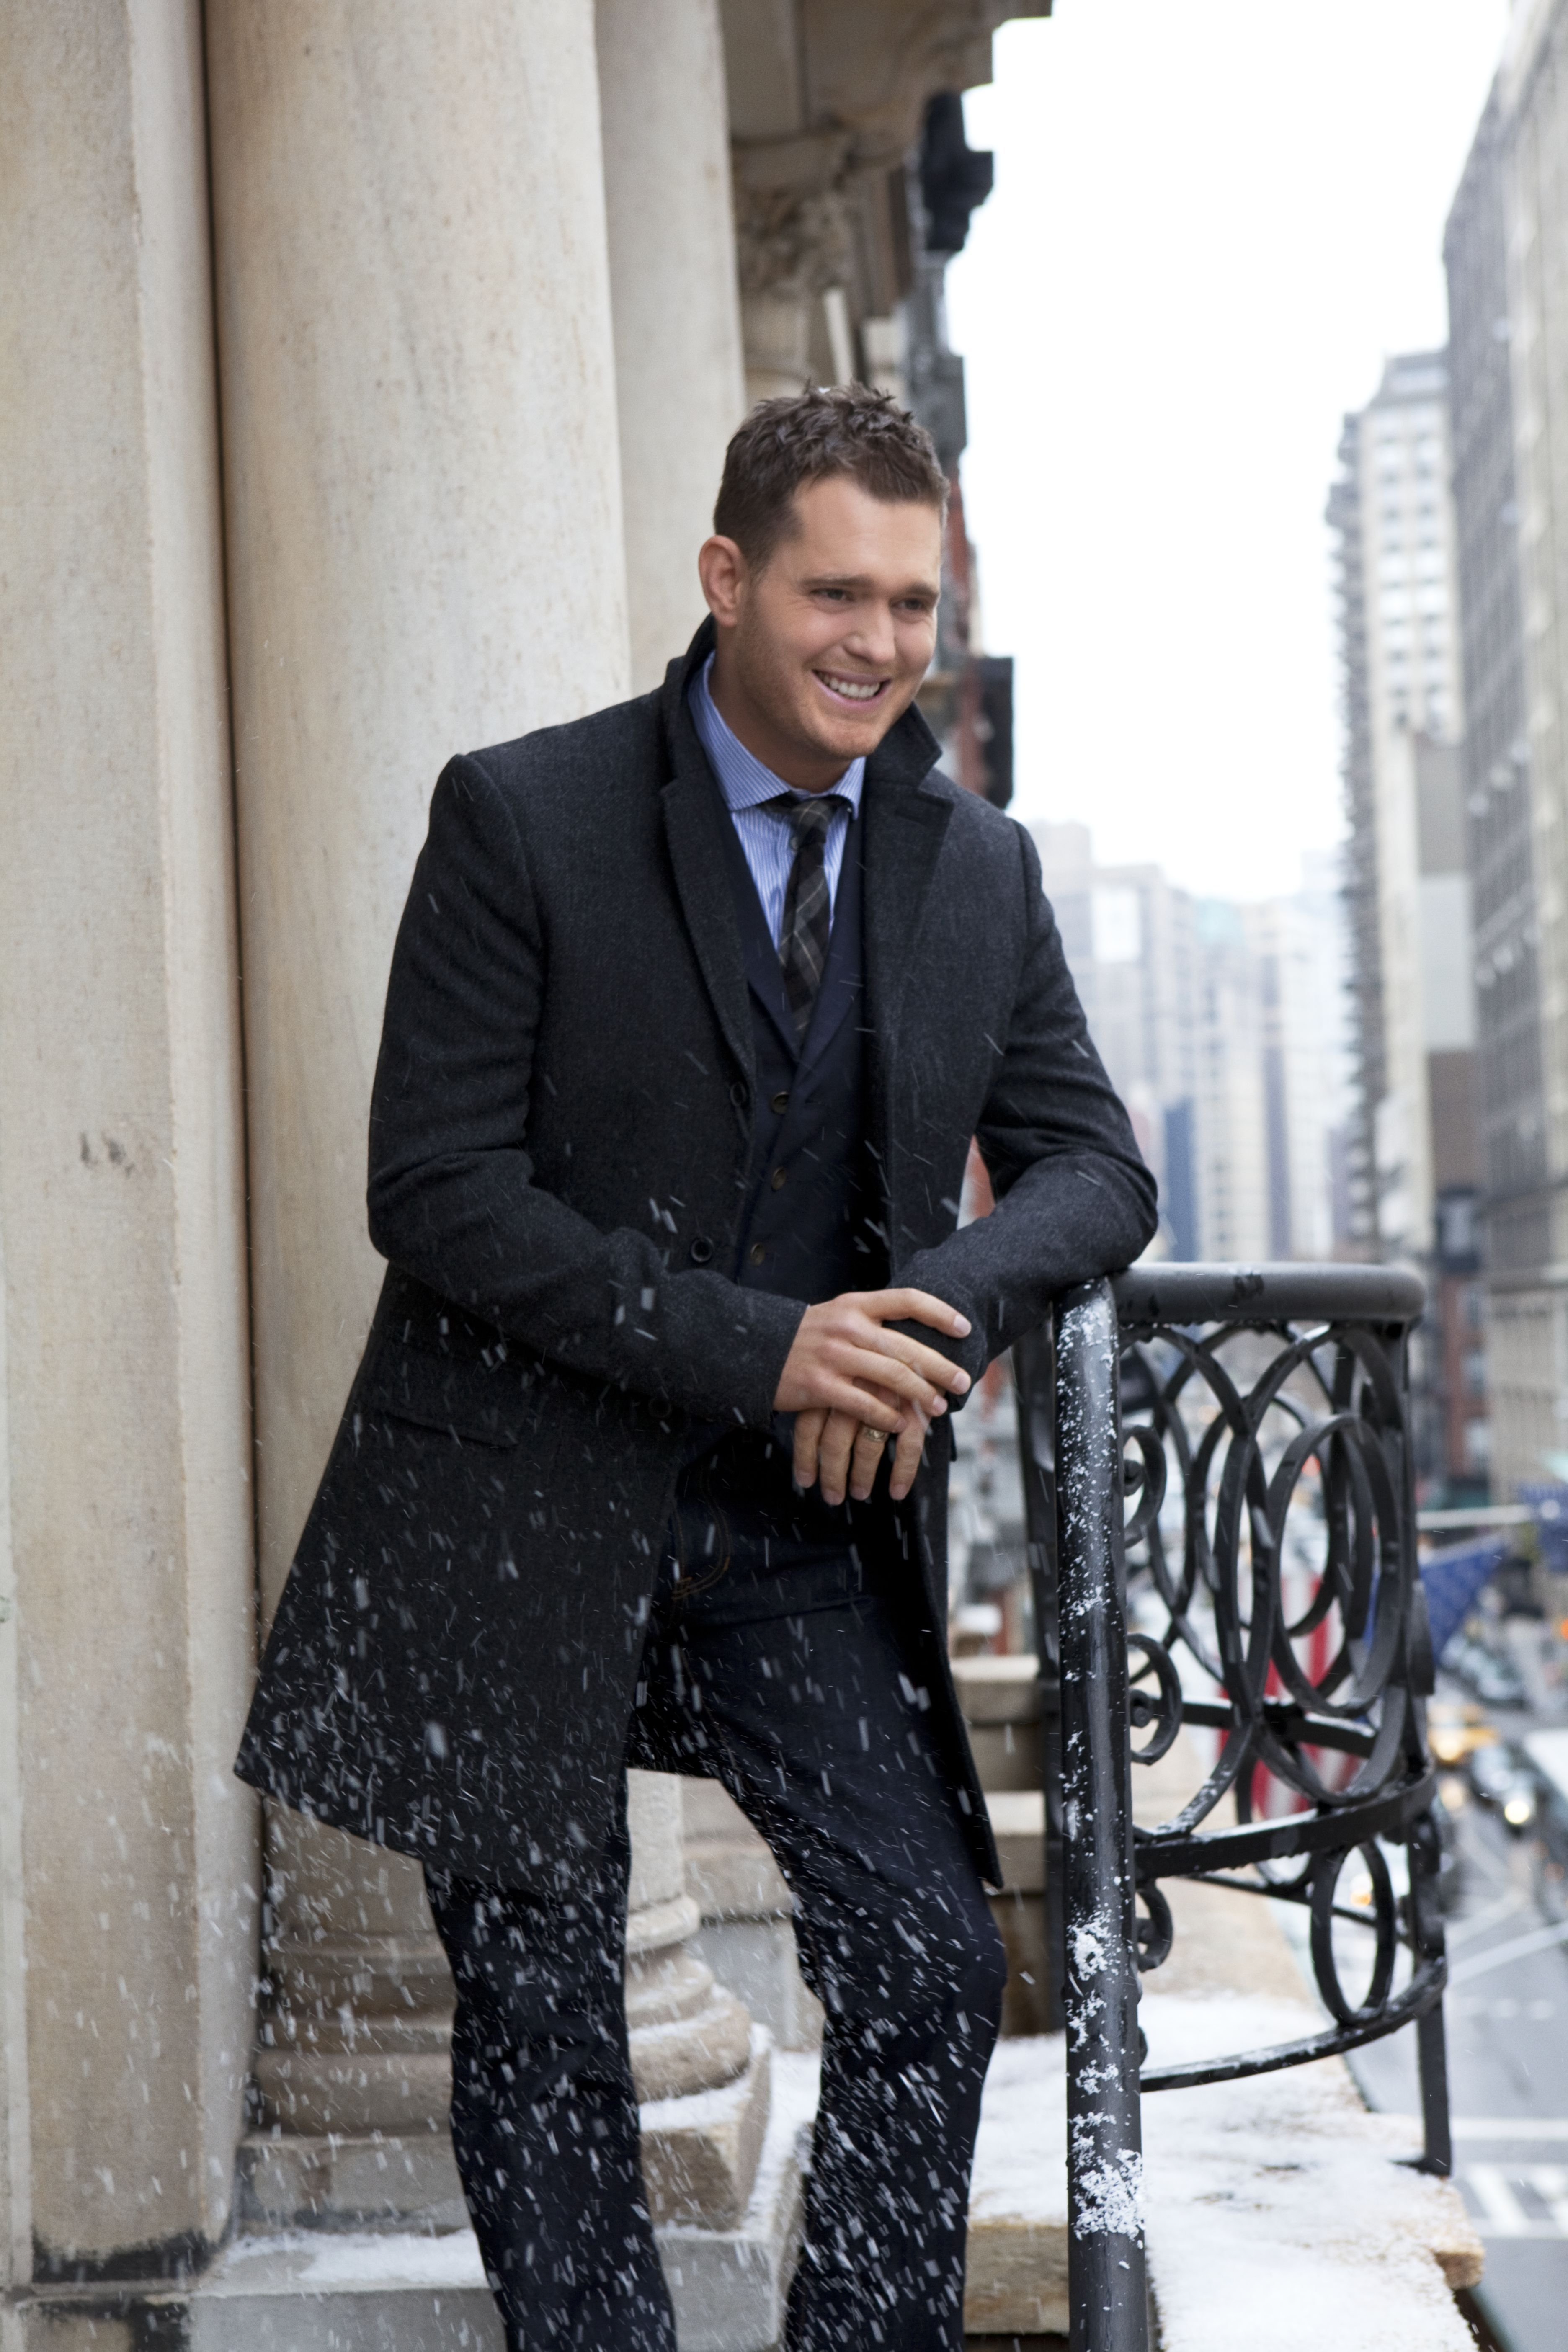 Michael Buble photo 34 of 44 pics, wallpapers